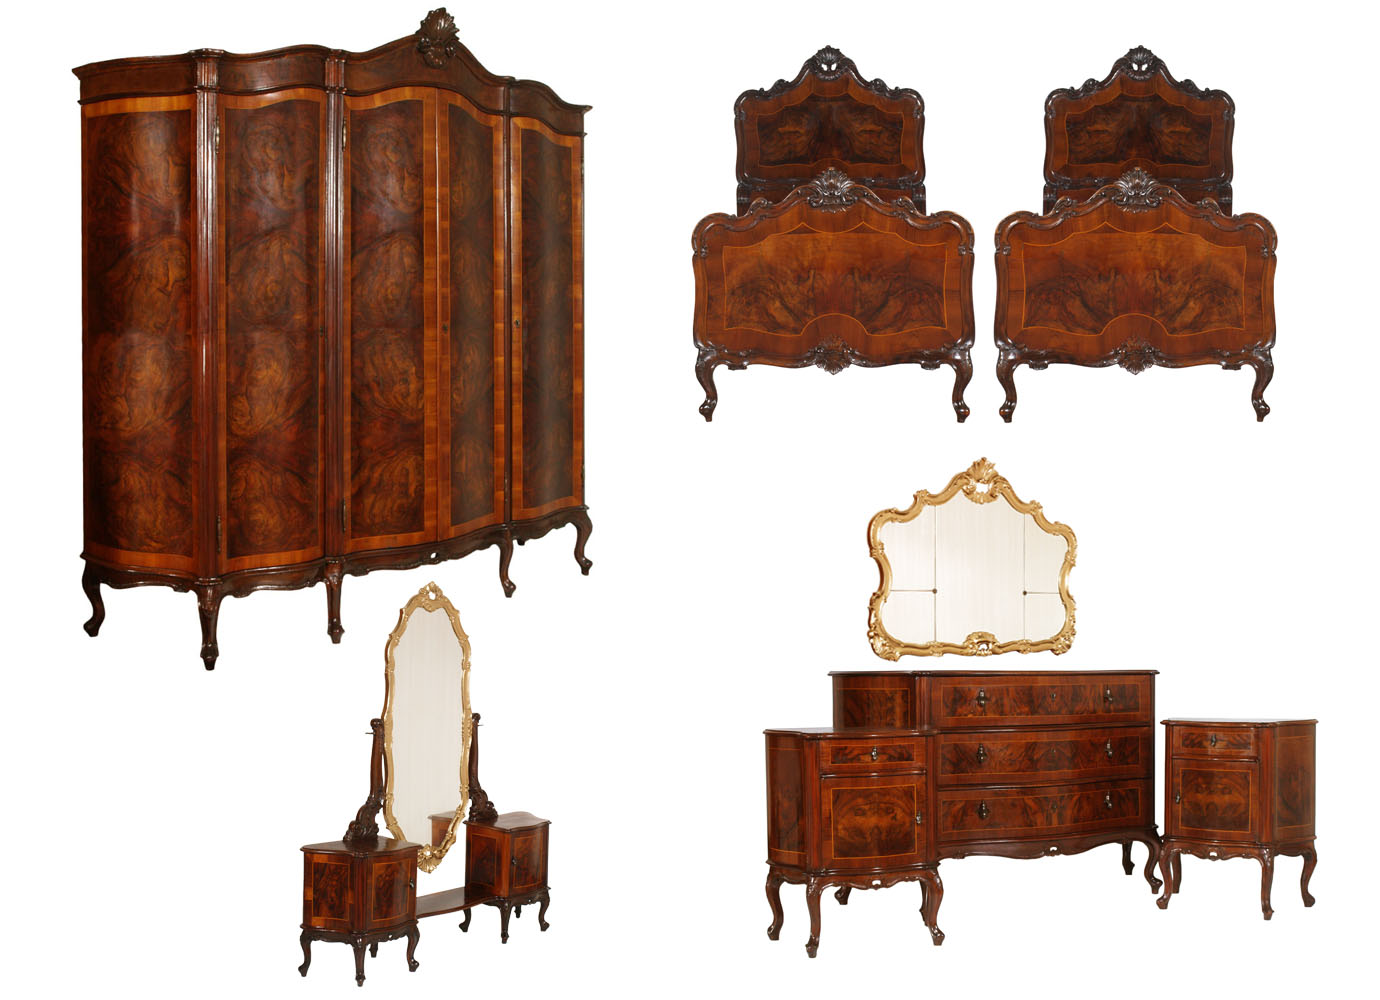 Antique bedroom sets baroque chippendale 1940s Modern bedroom with antique furniture